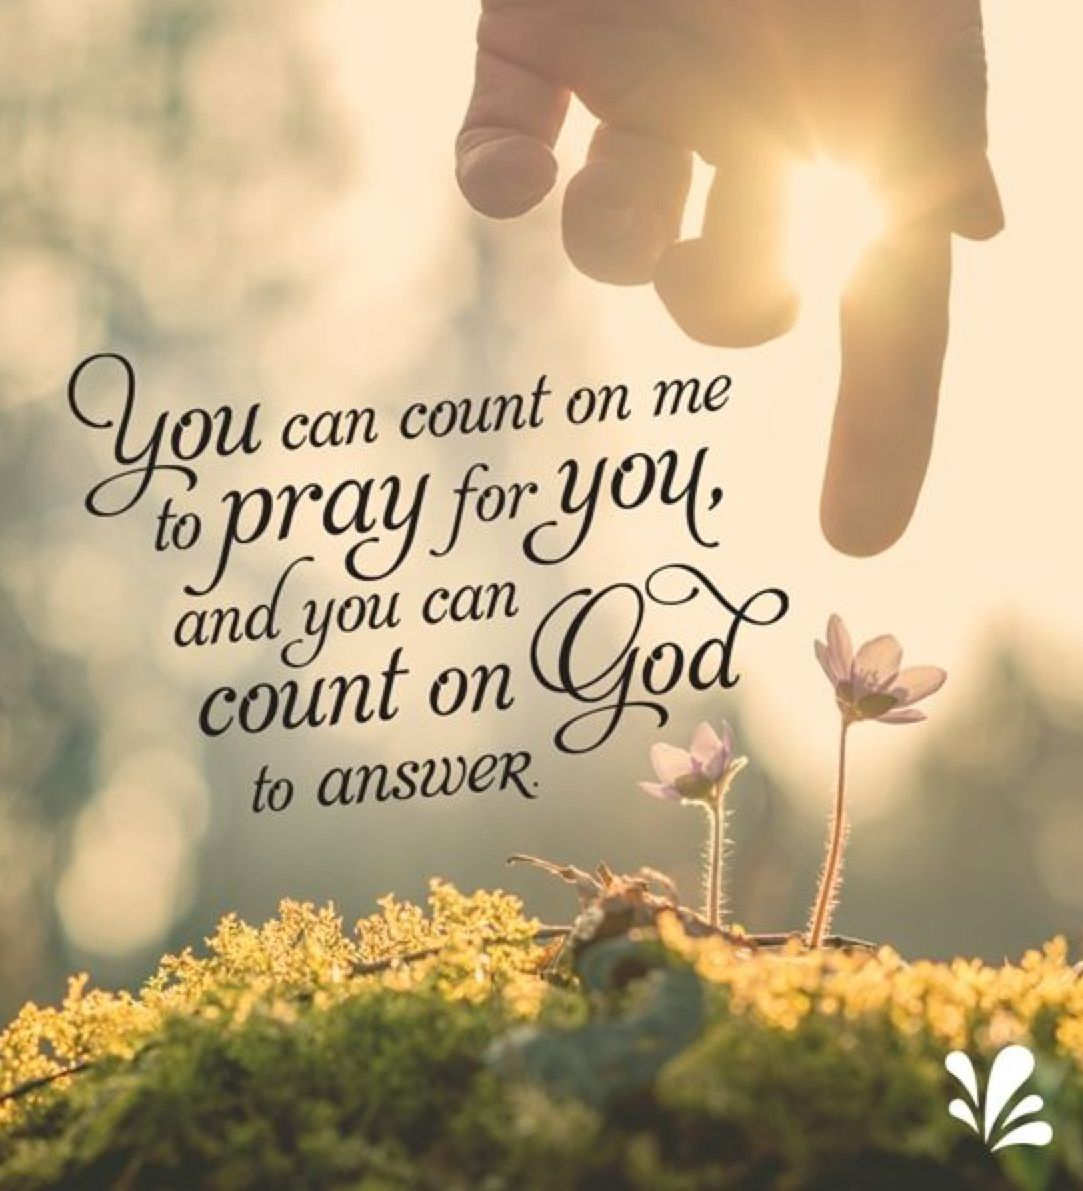 Just for you praying for others thinking of you quotes